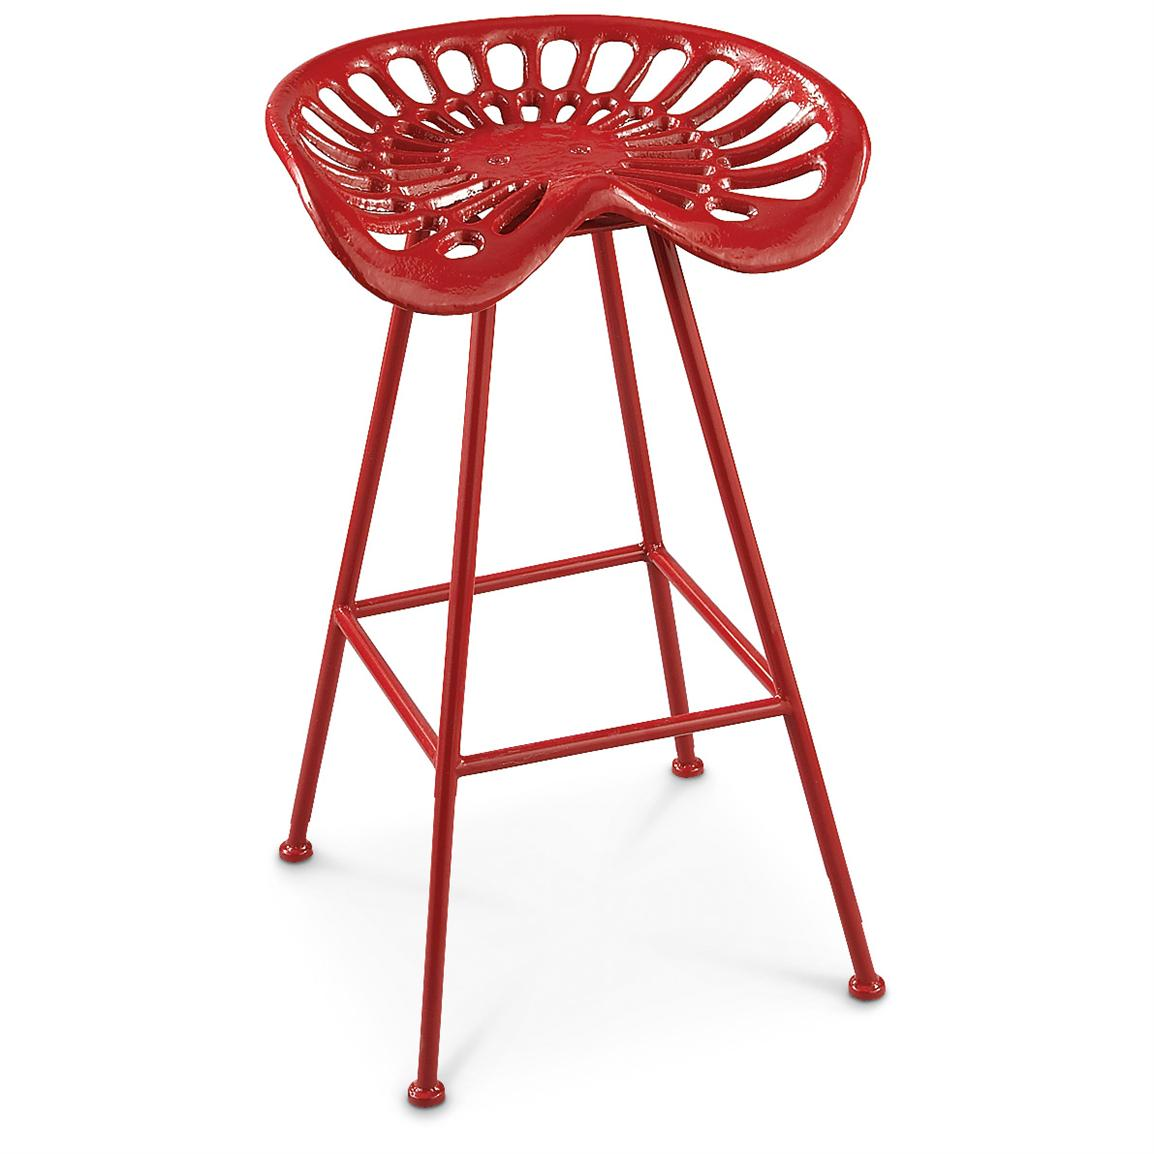 Image of: tractor seat bar stools red